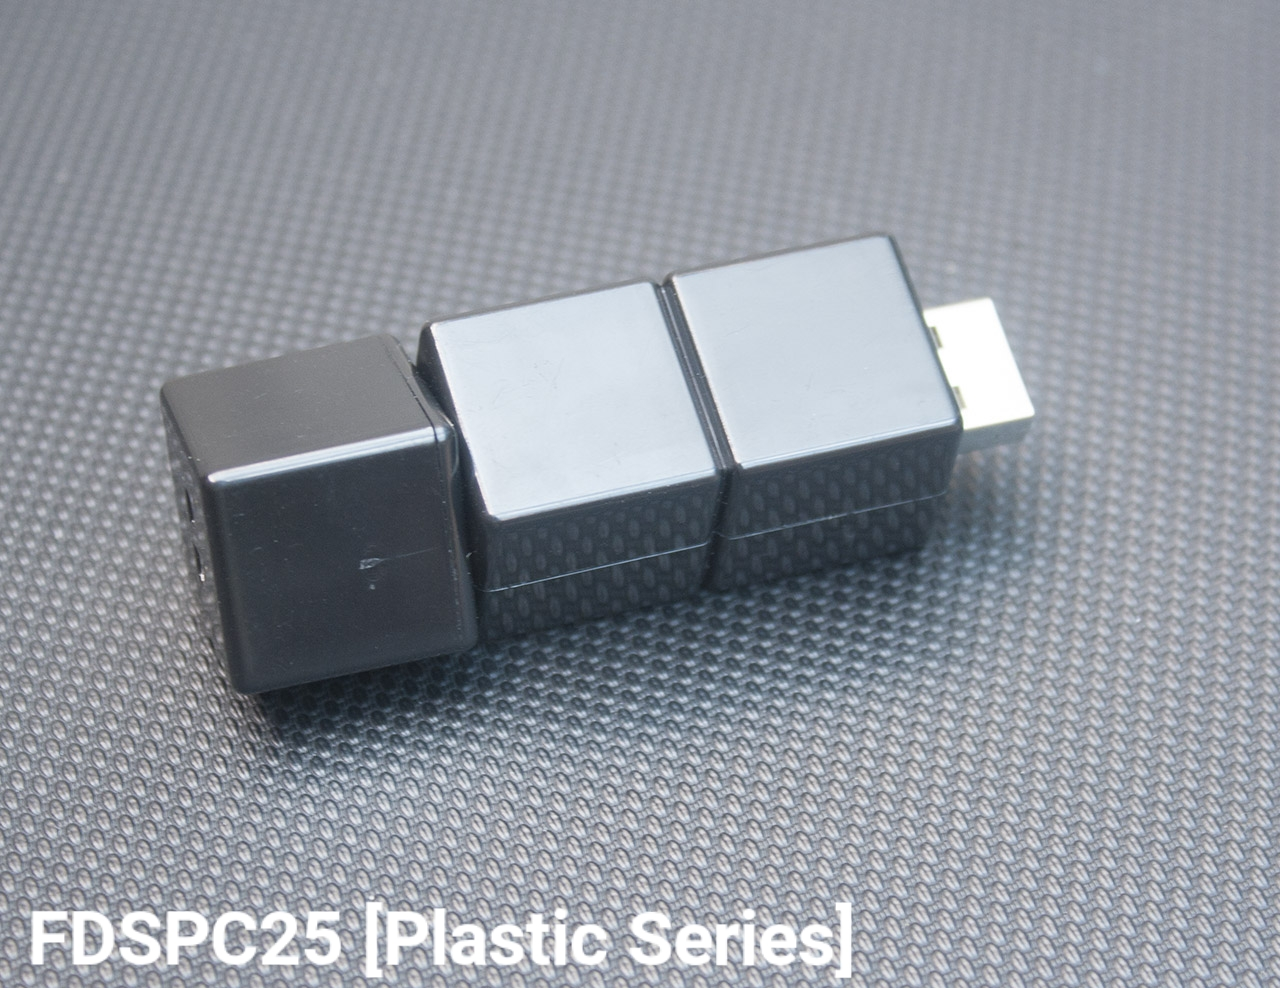 Flashdisk Plastik Series